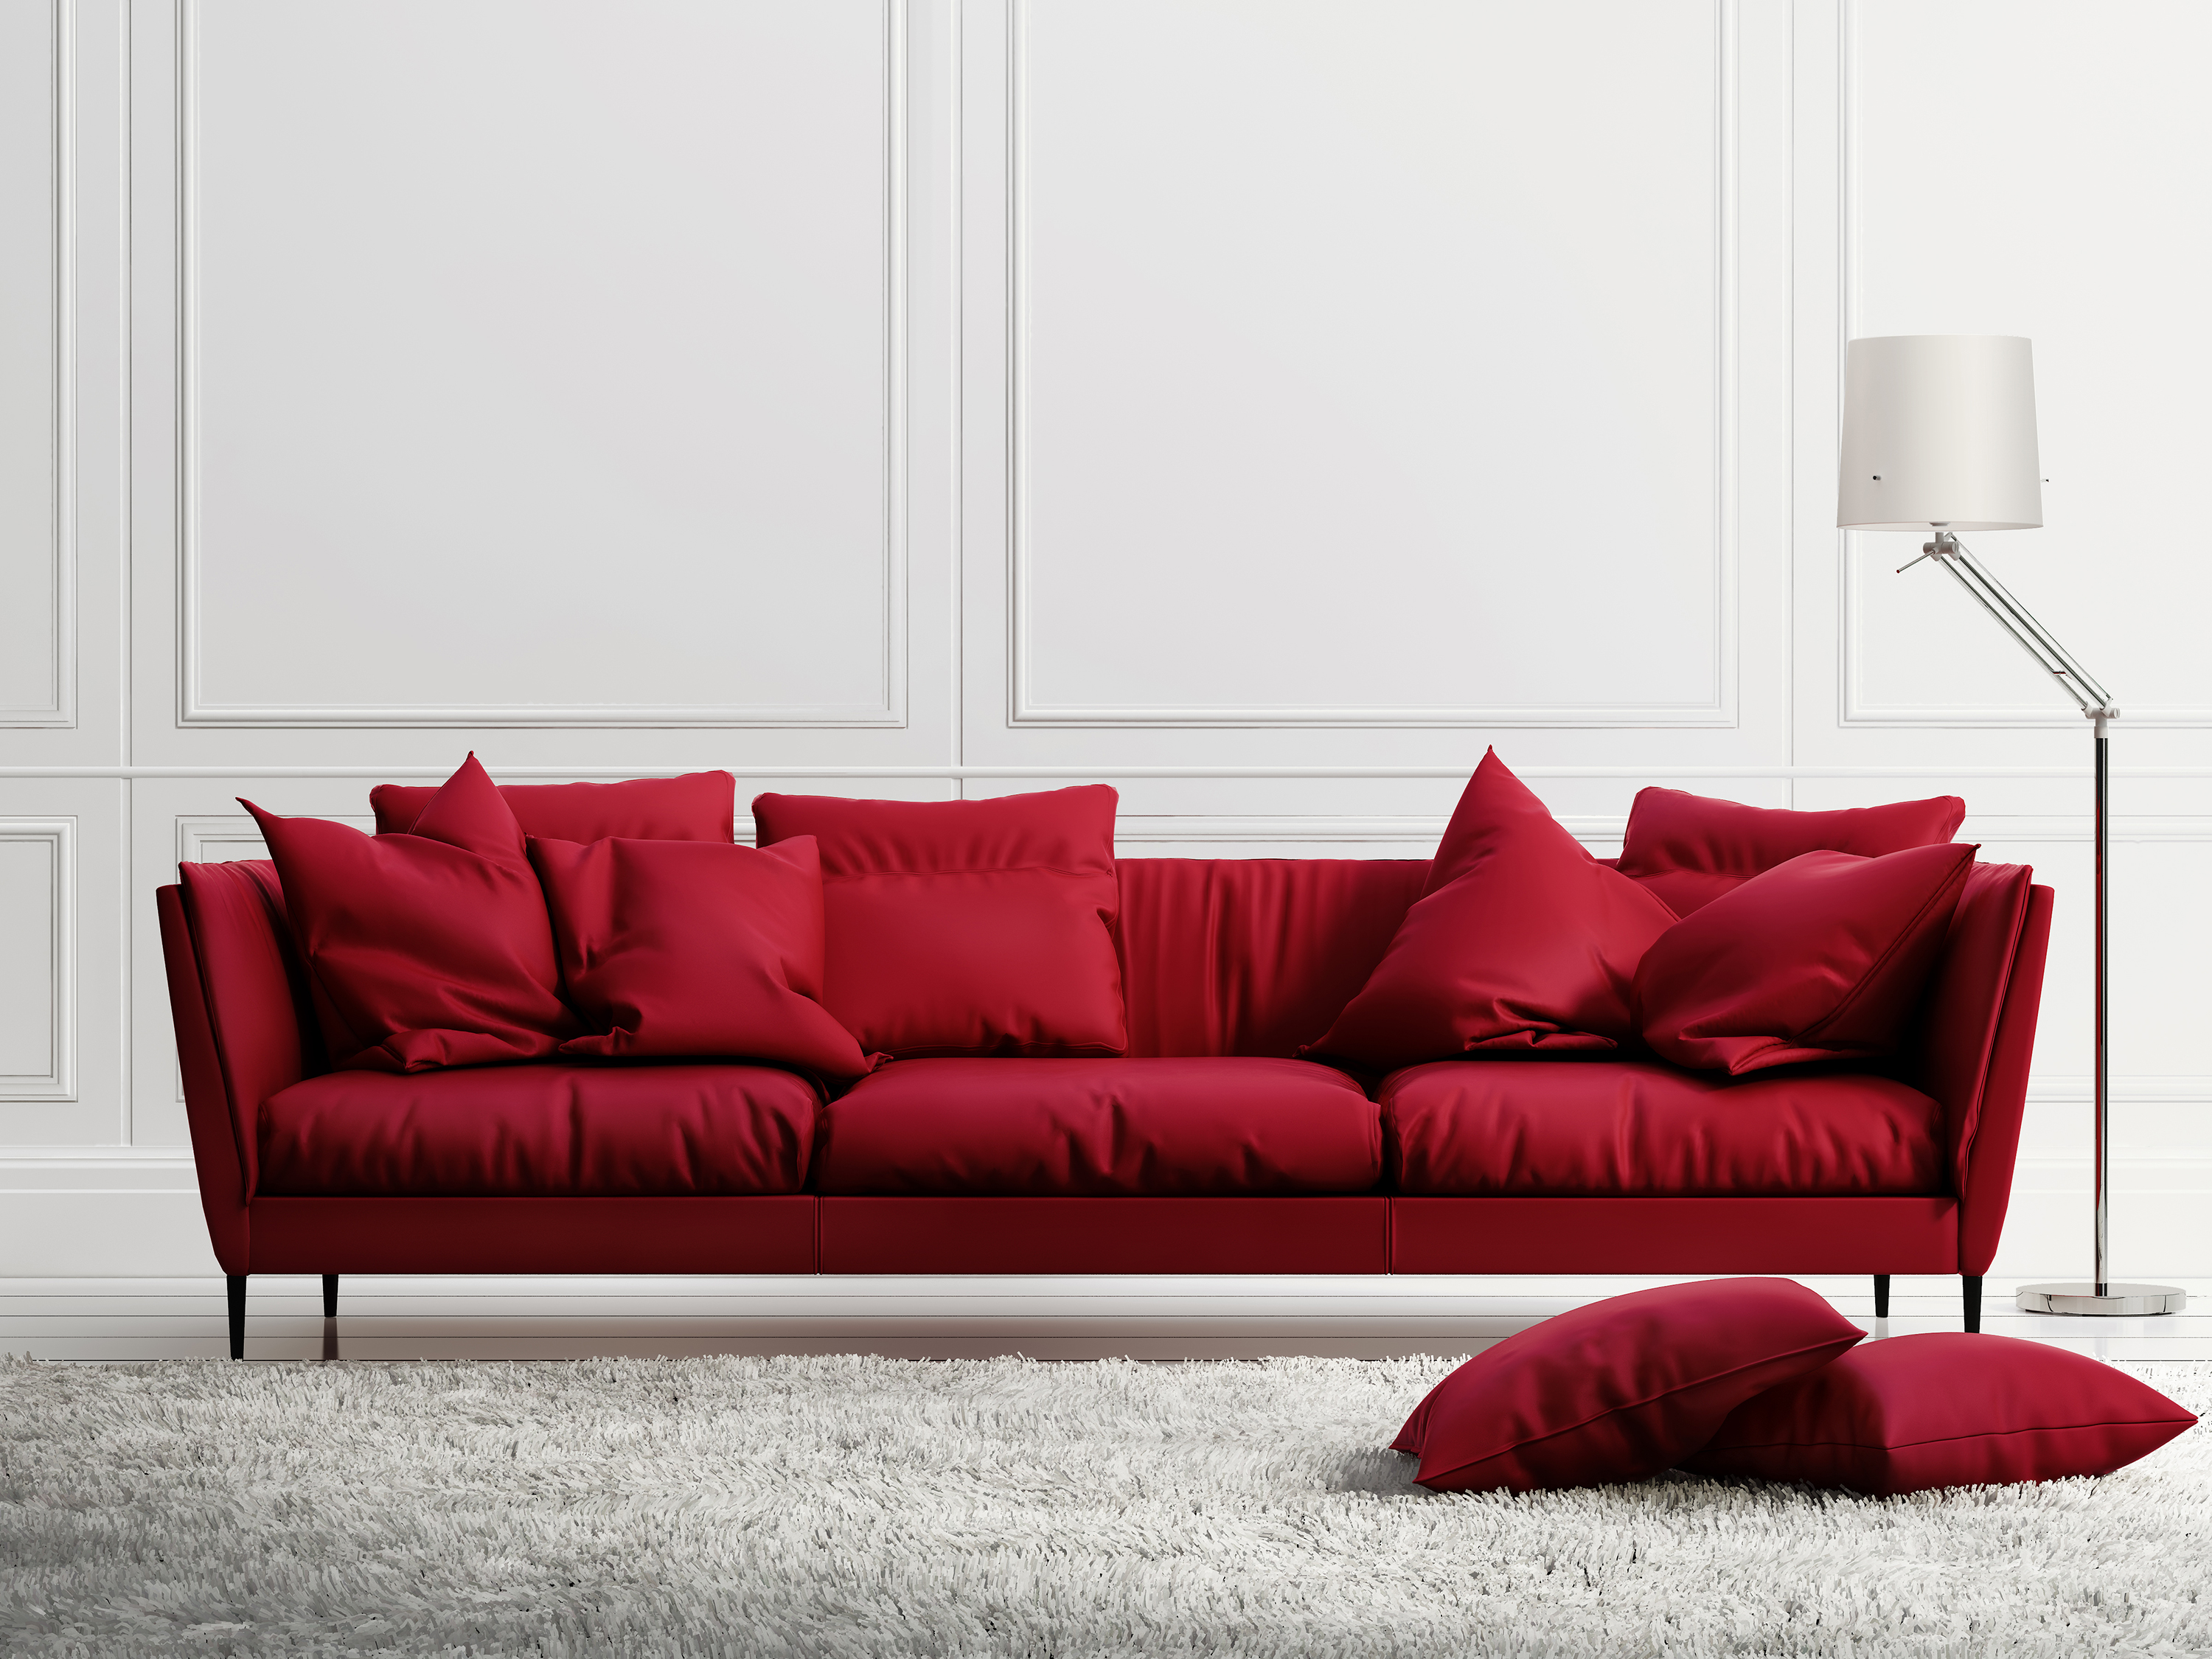 Floor lamp with red sofa 55541